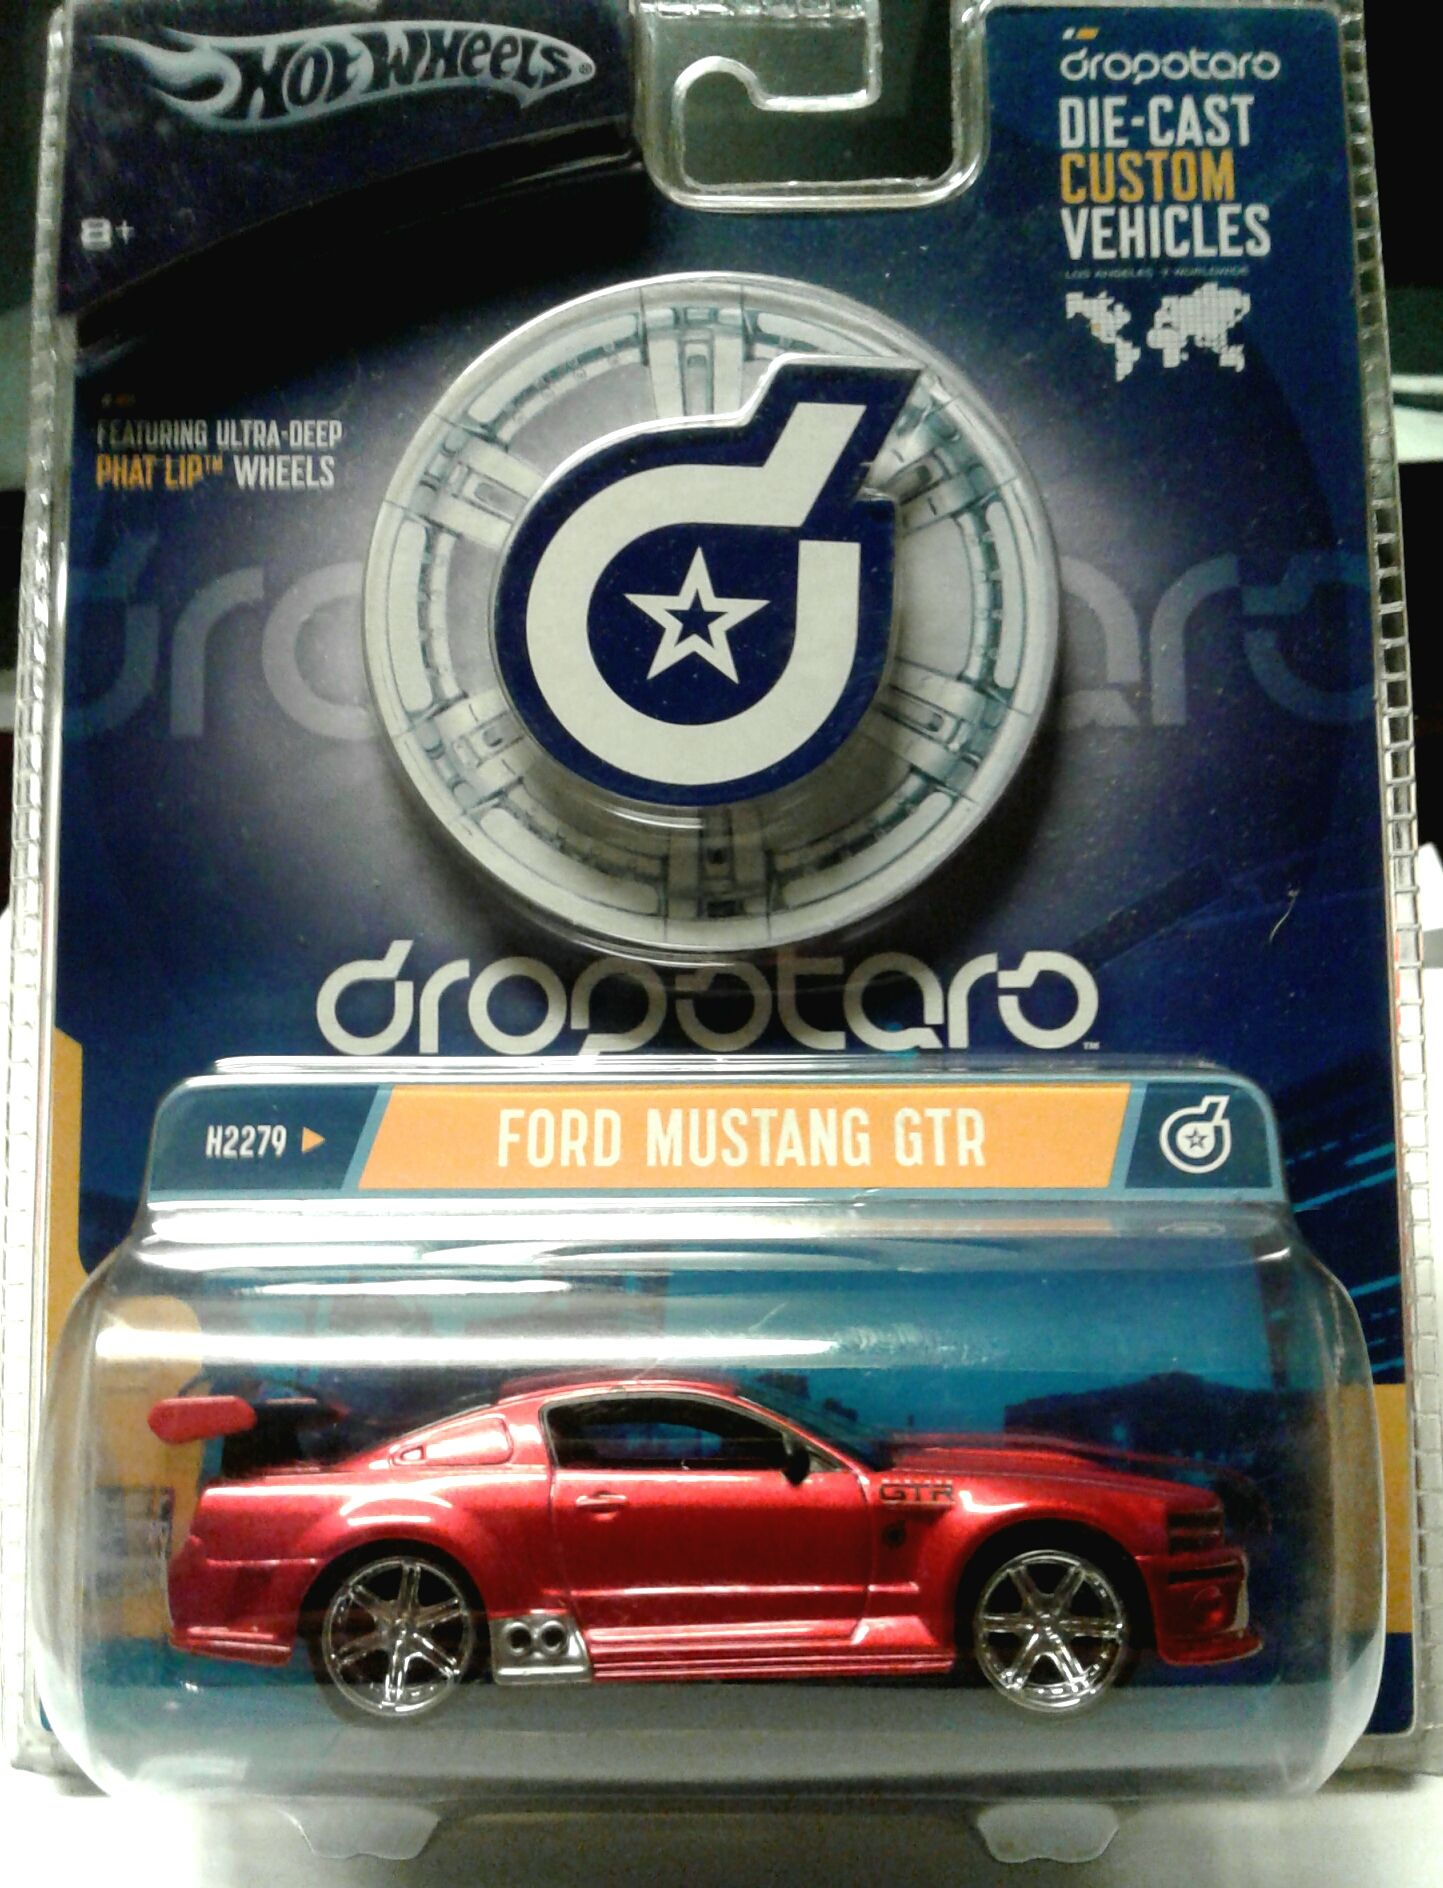 Hot Wheels Dropstars Ford Mustang Gtr 1 50 Scale Deep Dish Rims Price 14 95 Mustang Gtr Hot Wheels Diecast Cars